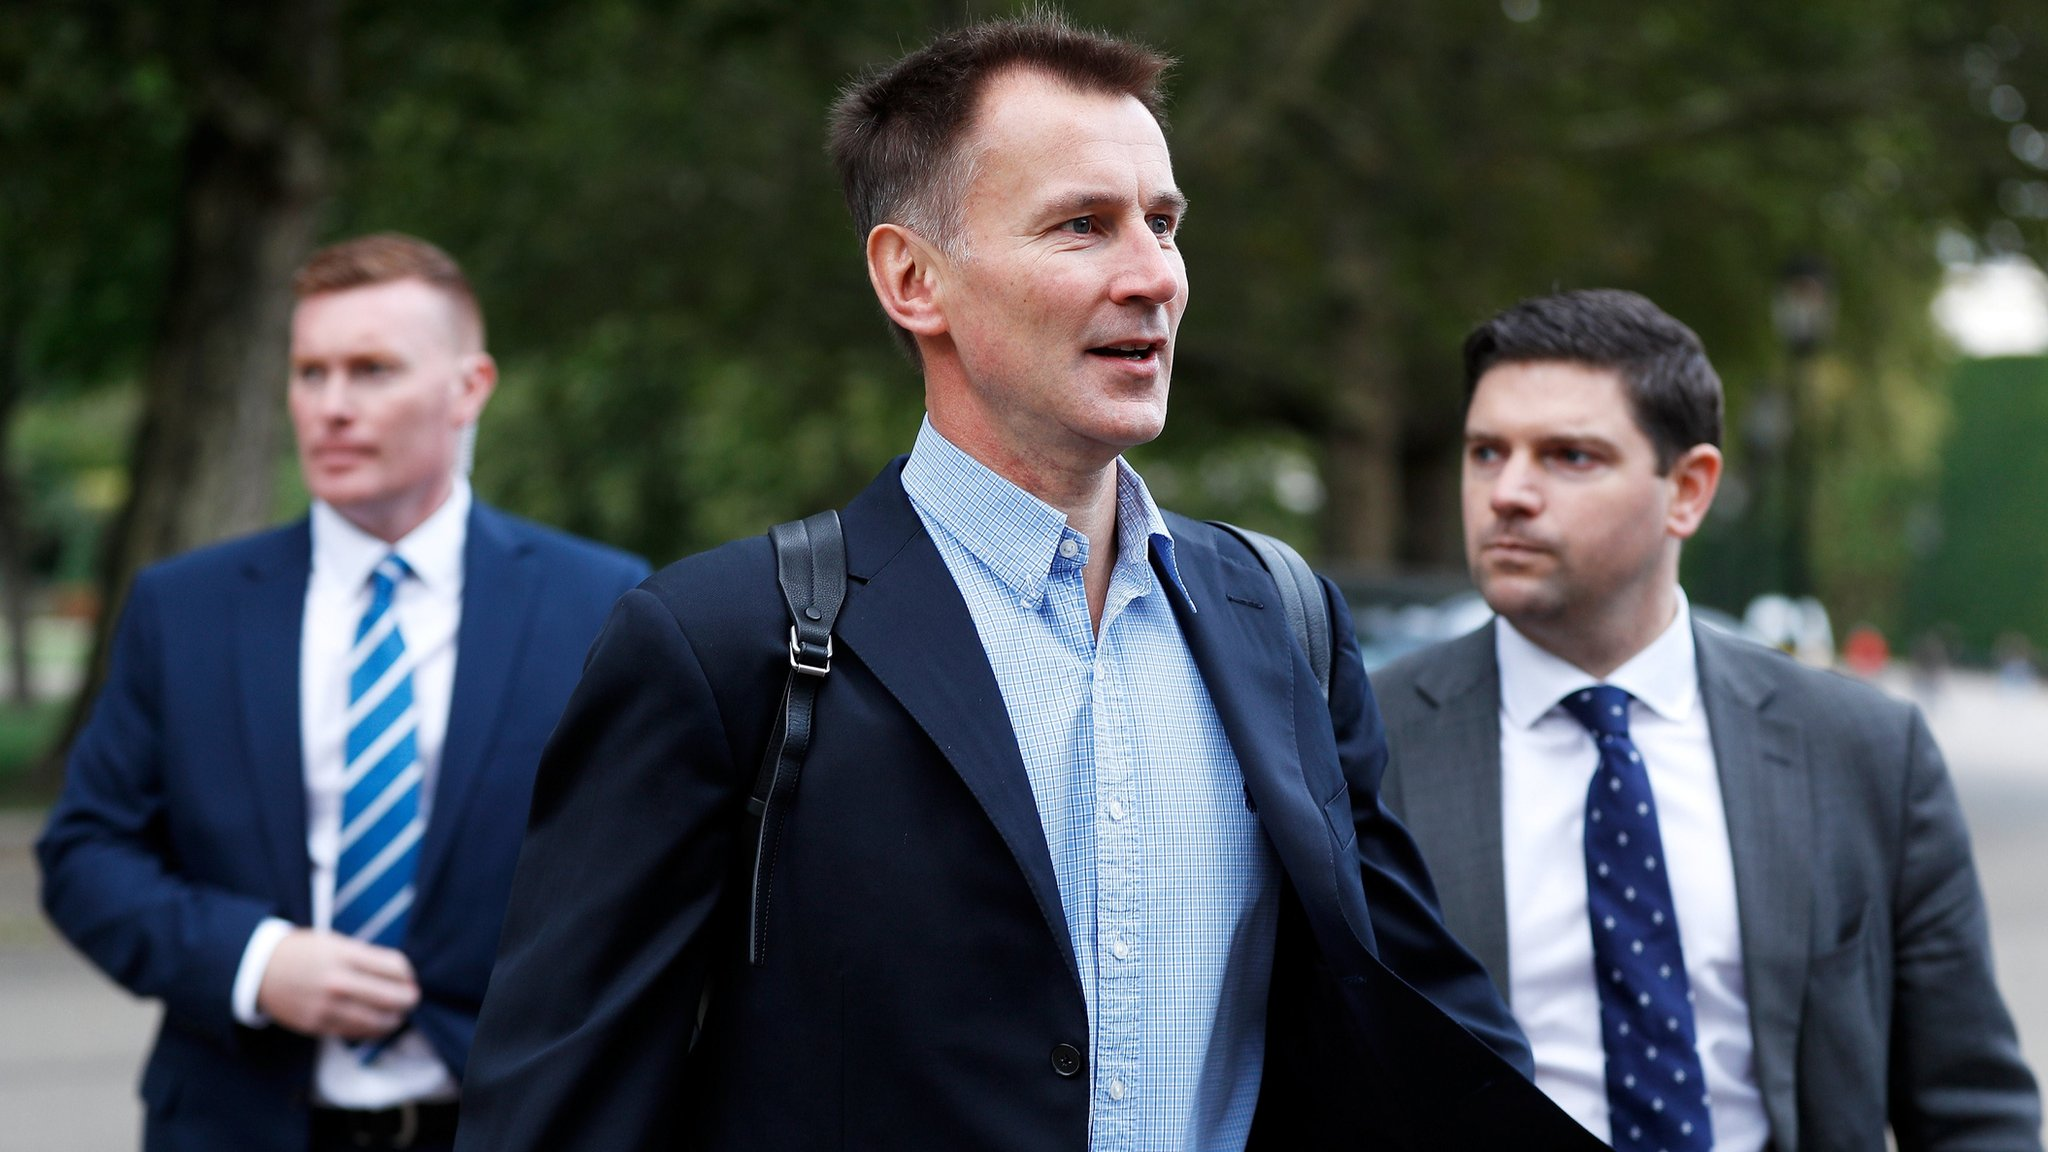 Jeremy Hunt: Don't mistake politeness for weakness